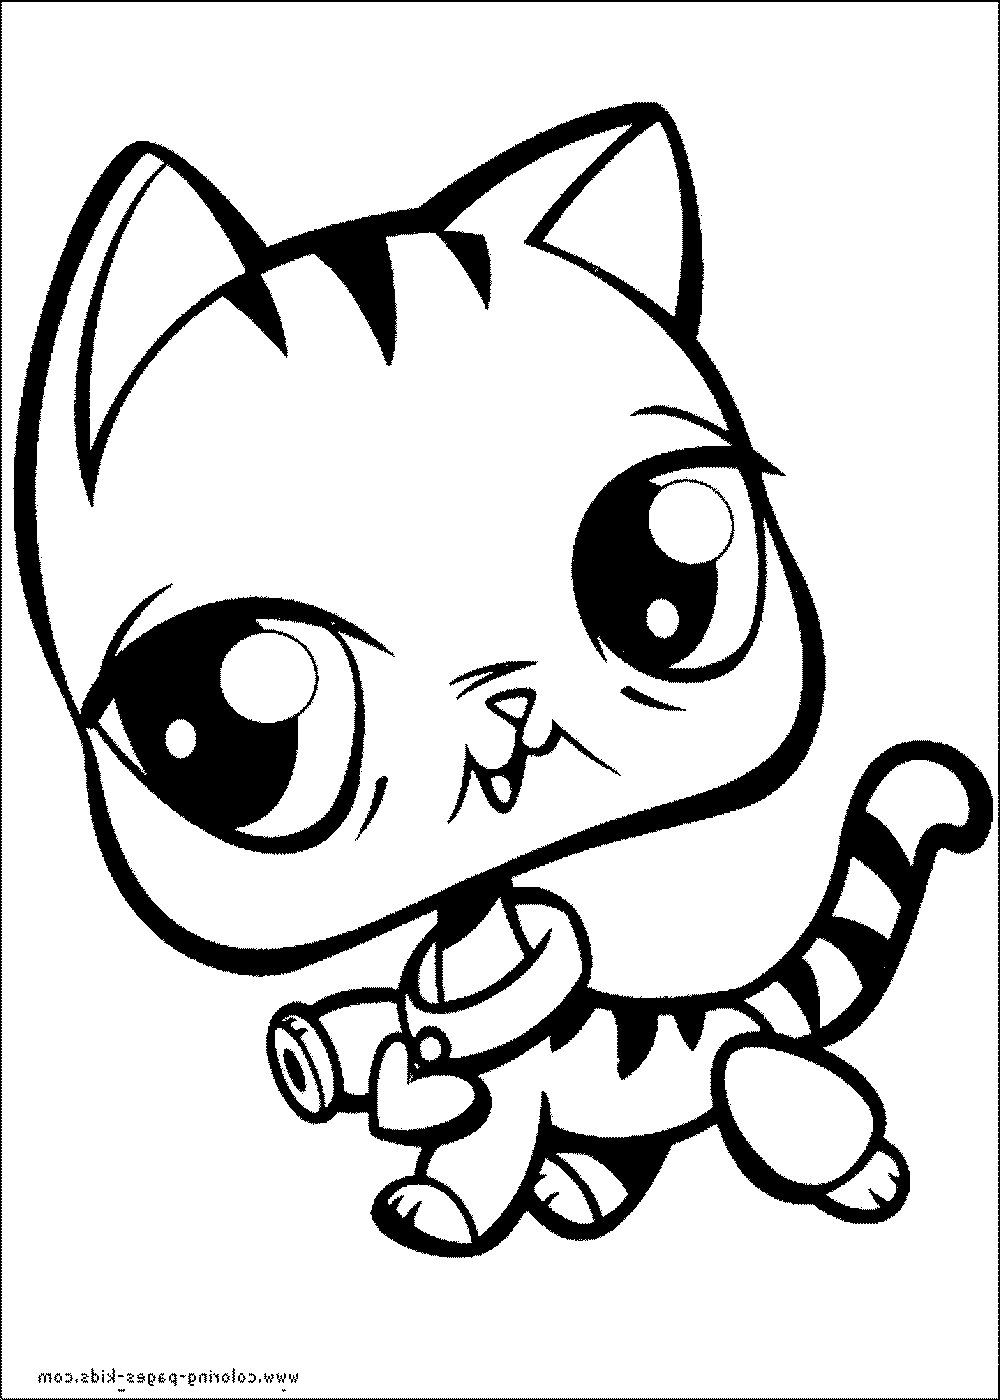 Littlest pet shop coloring page for Littlest pet shop coloring pages panda